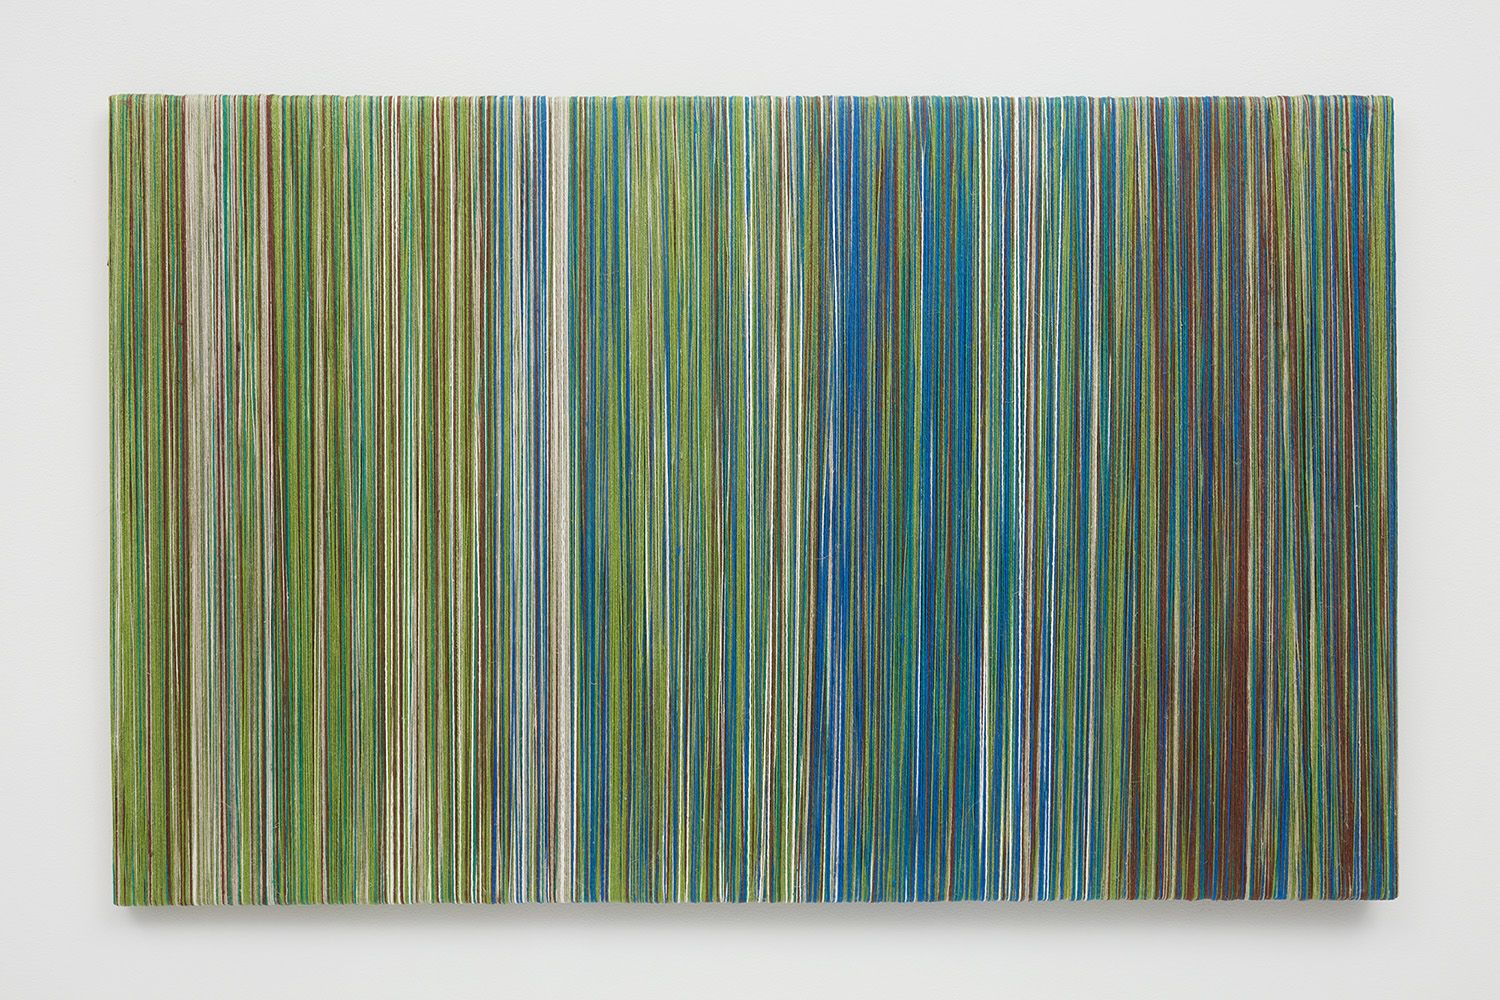 Wood board covered with thin lines of linen yarn by Sheila Hicks